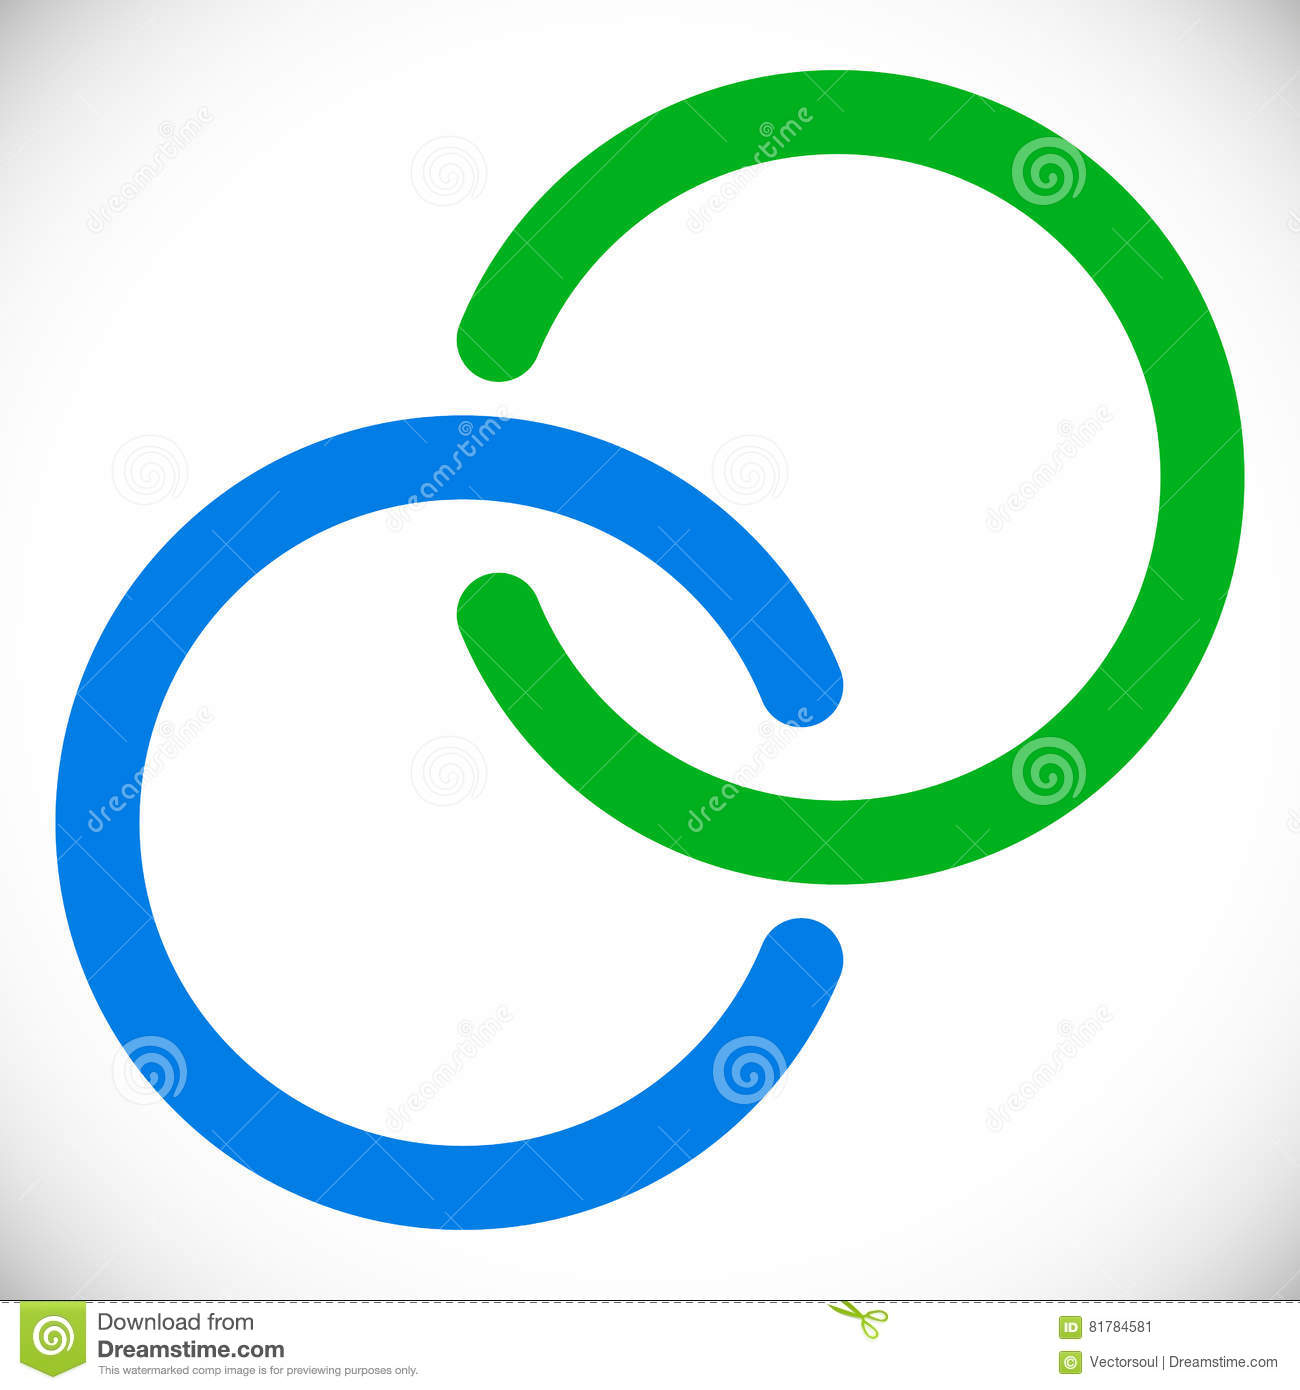 Interlocking circles rings. Abstract logo element in blue and gr